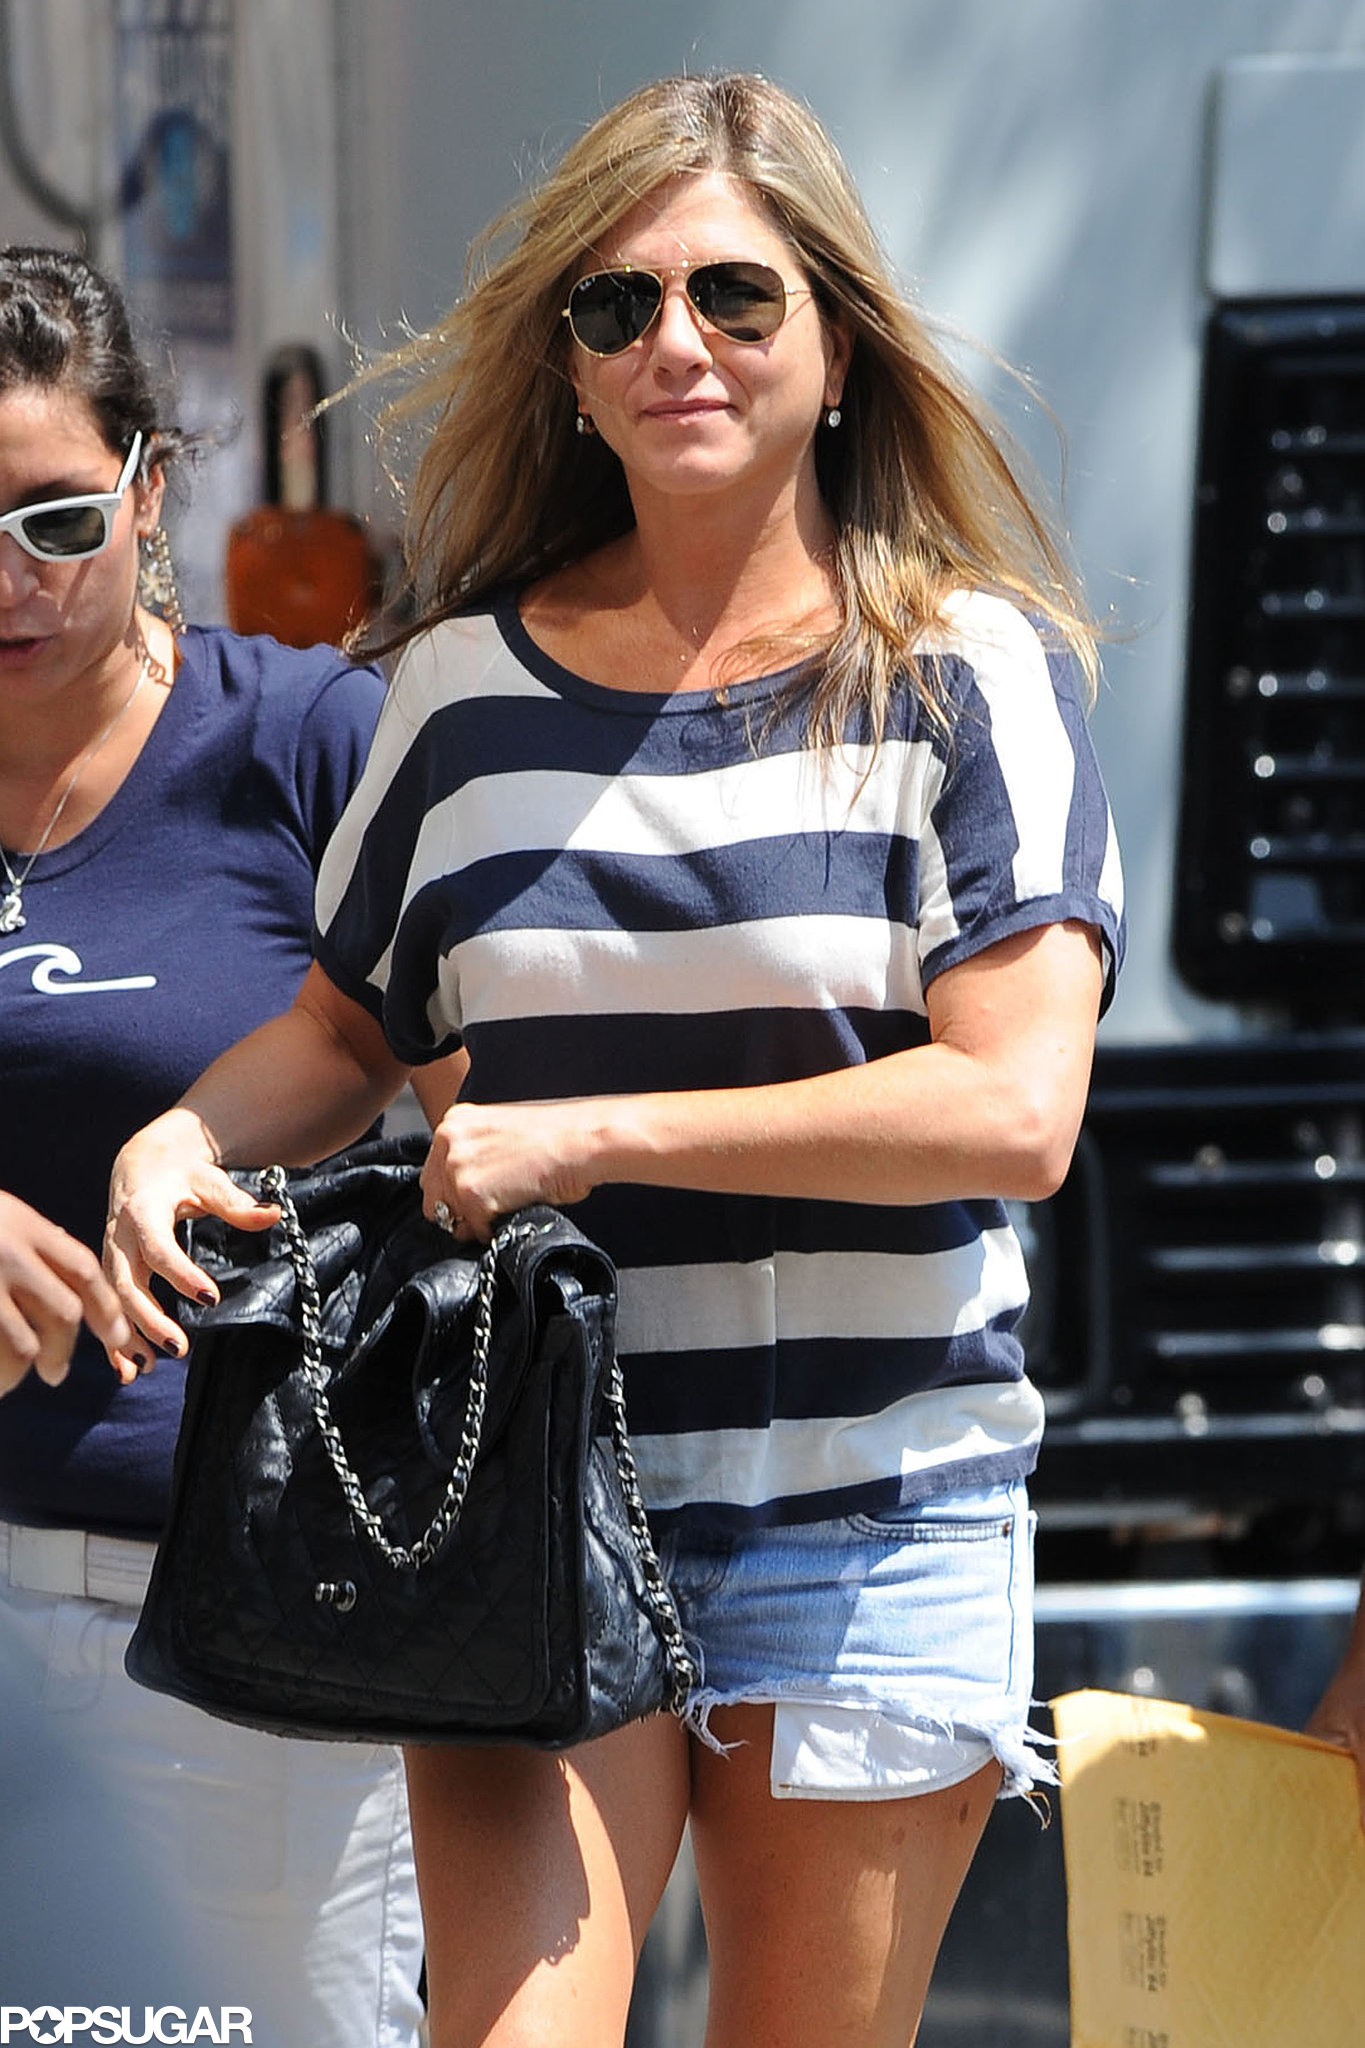 Jennifer Aniston prepared for a day of work on July 29.